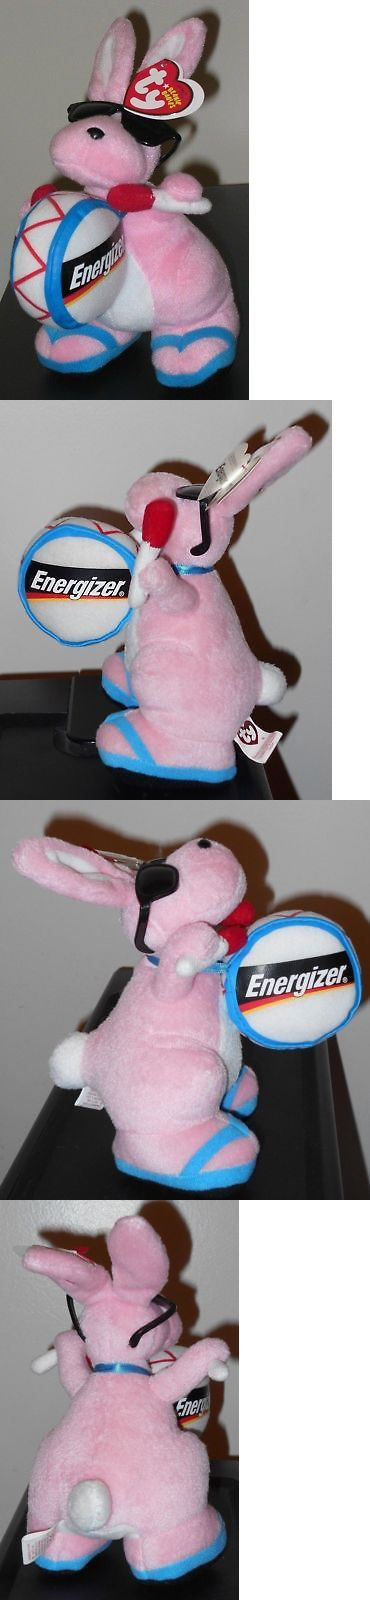 3a8e4bd0419 Retired 440  Ty Beanie Baby ~ Energizer Bunny The Bunny (Walgreen S  Exclusive) Mwmt -  BUY IT NOW ONLY   49.9 on  eBay  retired  beanie   energizer  bunny